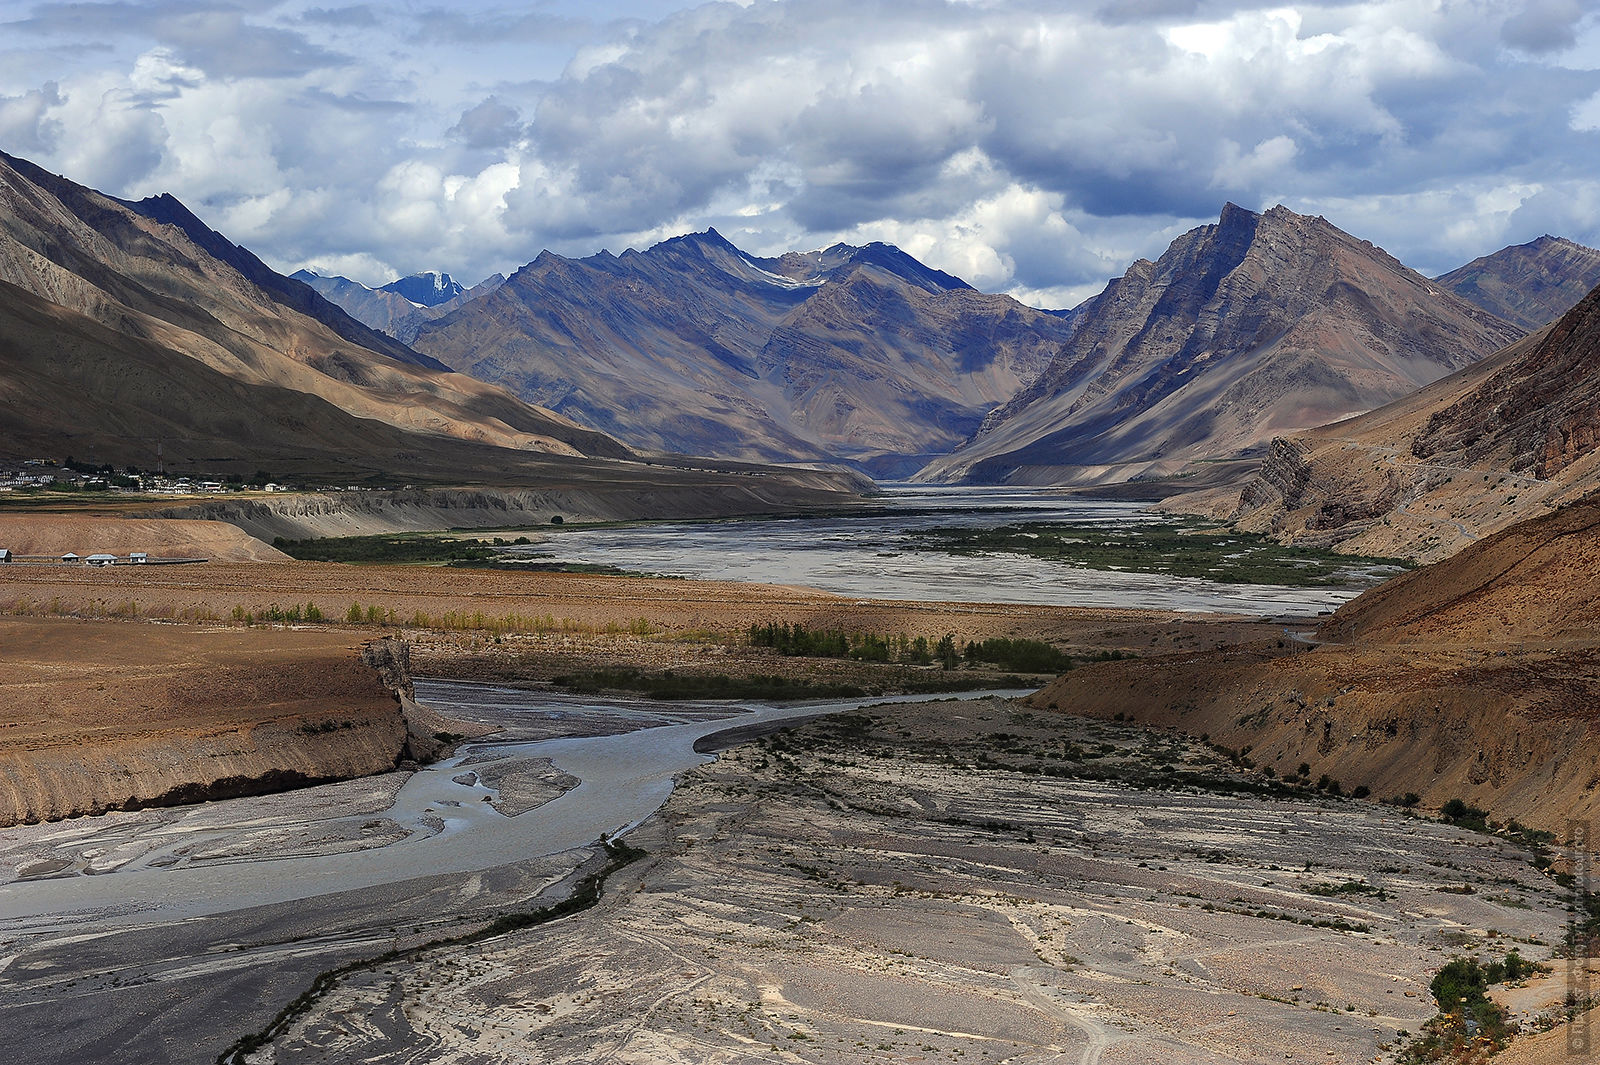 The landscape of Spiti valley from the village Cosa. Photo Tour of the valley of Spiti, Little Tibet, August 2017.